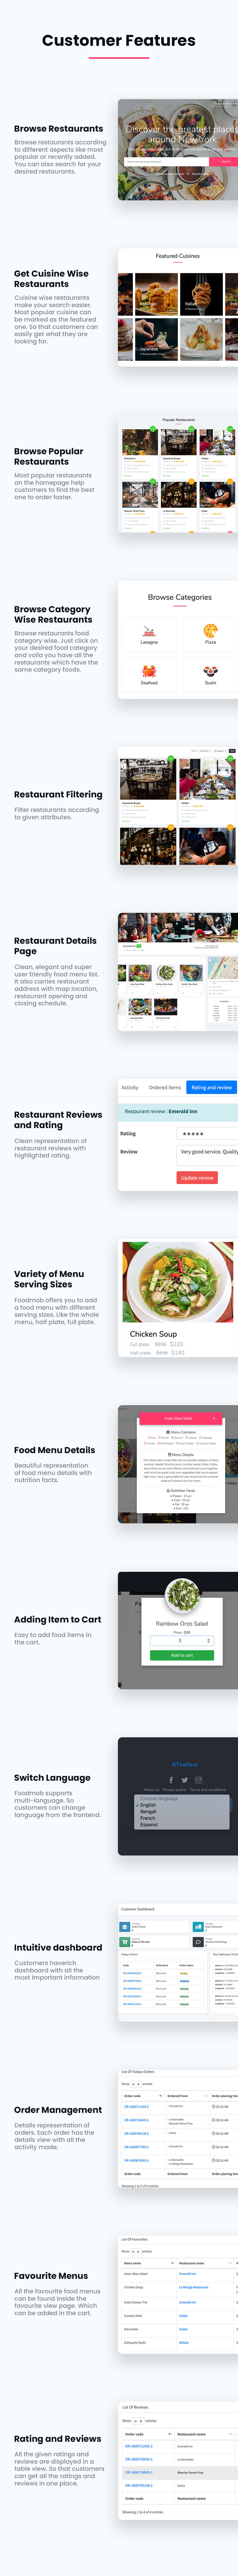 FoodMob - An Online Multi Restaurant Food Ordering and Management with Delivery System - 7